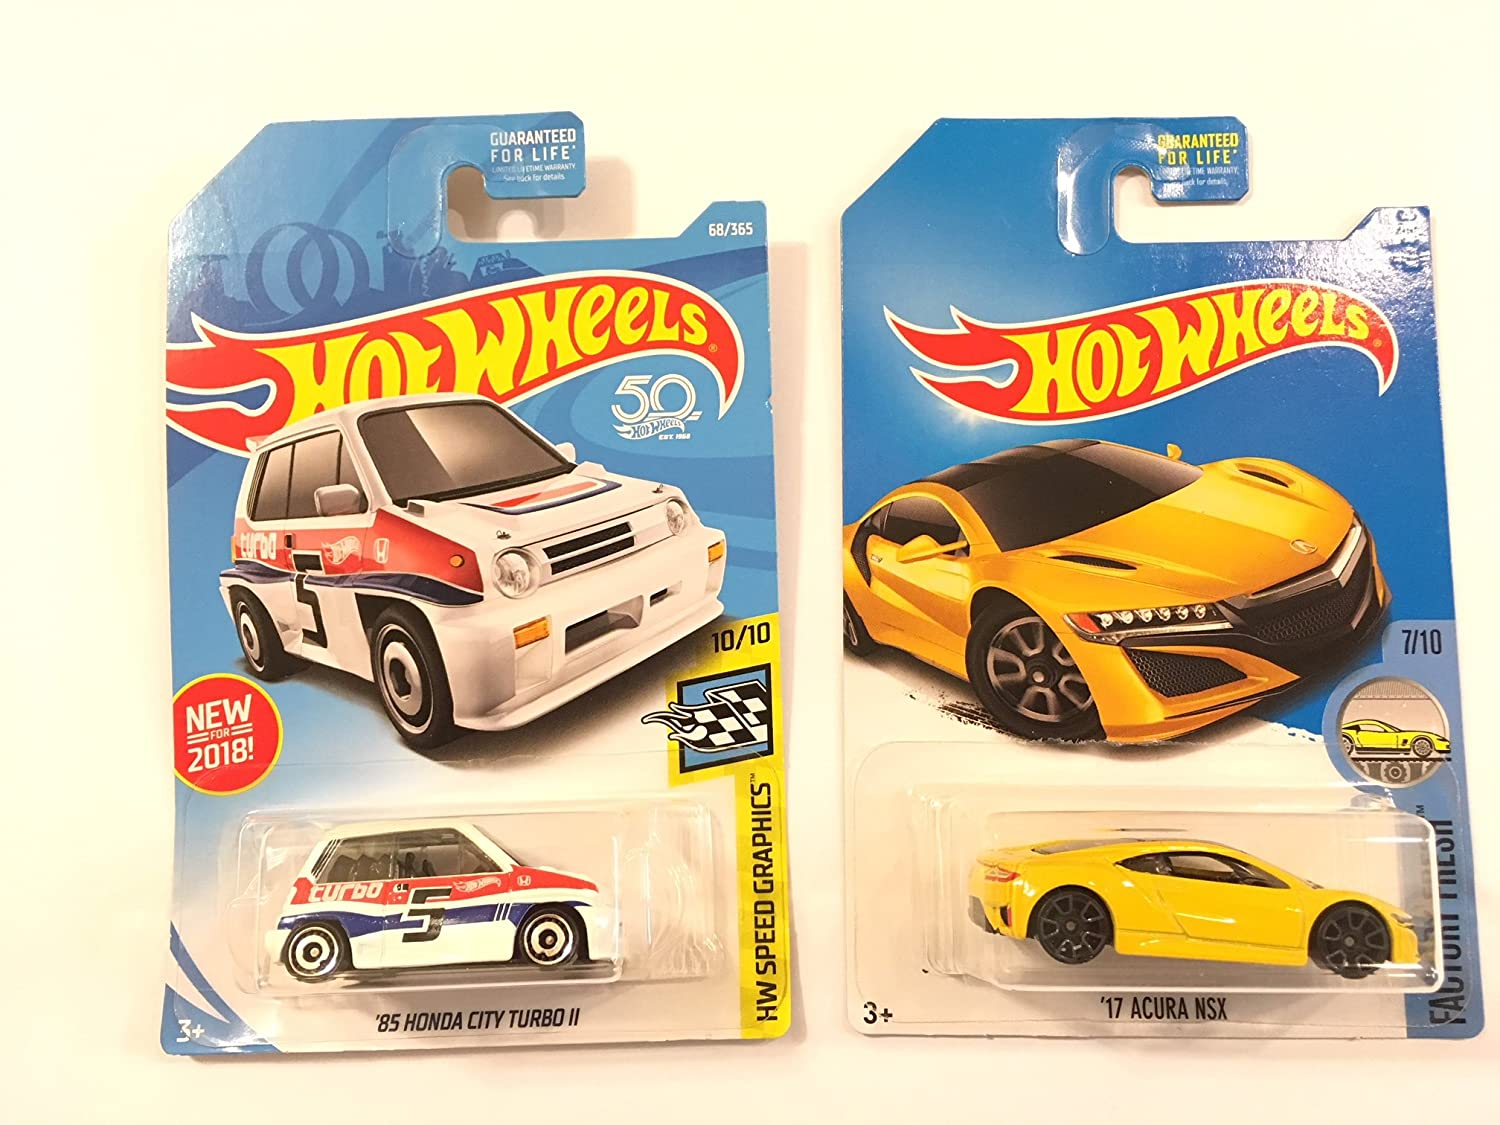 Amazon.com: Hot Wheels 2017 Factory Fresh 17 Acura NSX 127/365, Yellow & Hot Wheels 2018 50th Anniversary HW Speed Graphics Honda City Turbo II 68/365, ...